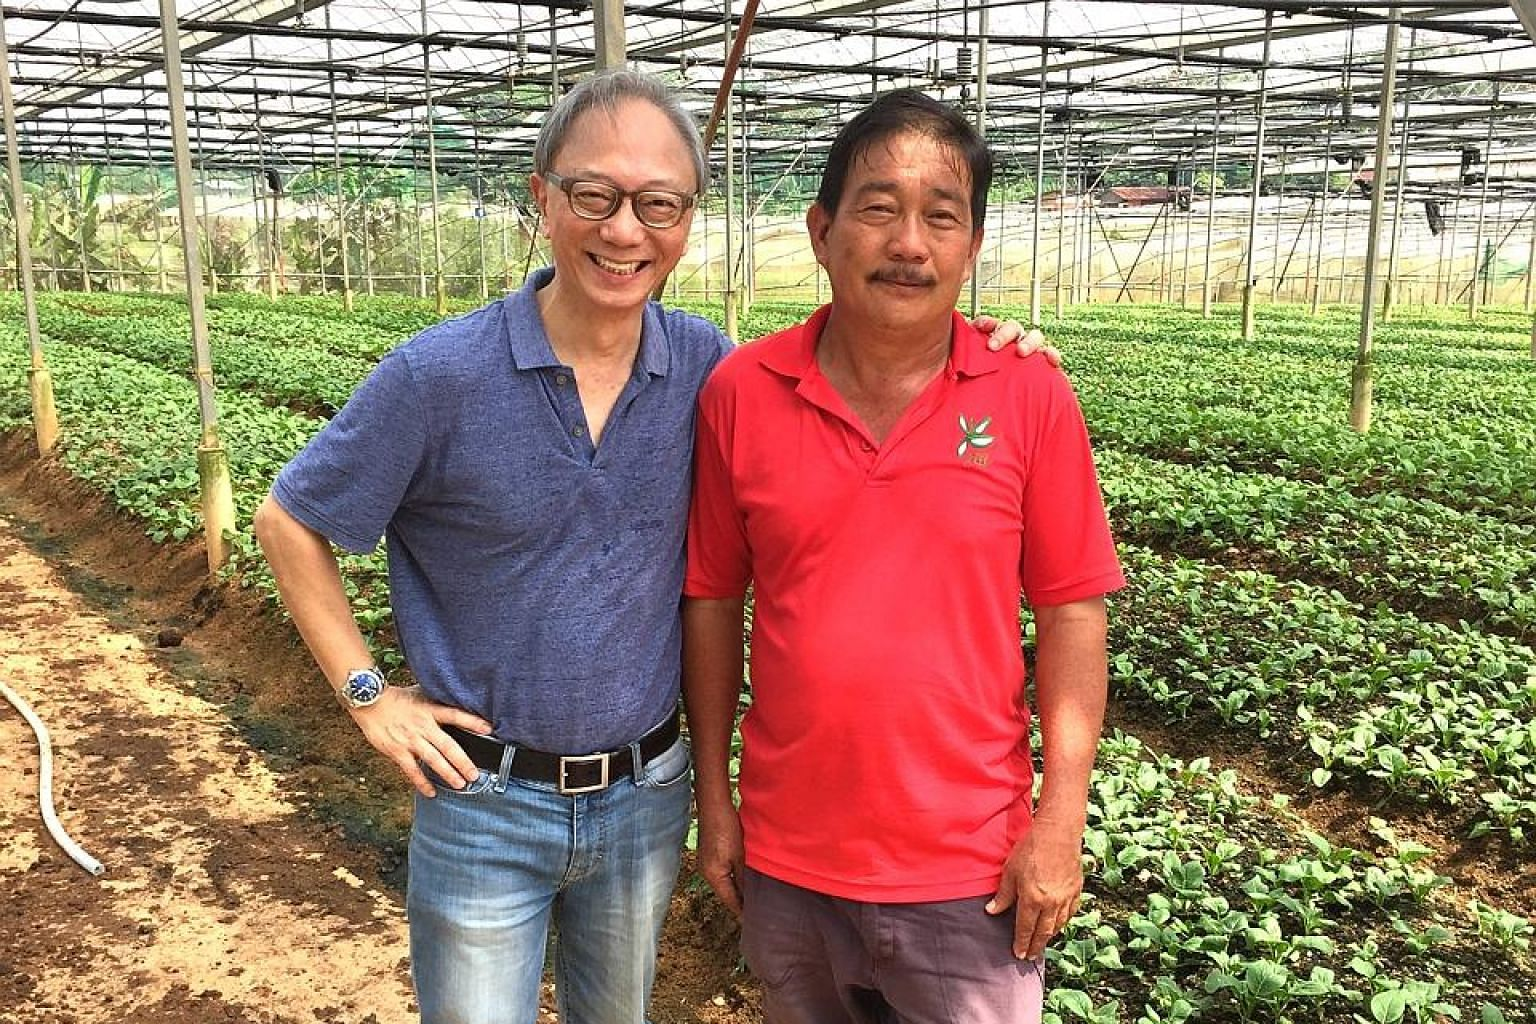 Public relations veteran Jimmy Tay (in blue) with Mr Alan Toh of Yili farm in Lim Chu Kang. The two men (right) surveying algal and duckweed bloom in a retention pond on the farm. Mr Tay in 2016 invested an undisclosed sum in Silicon Valley biotech s